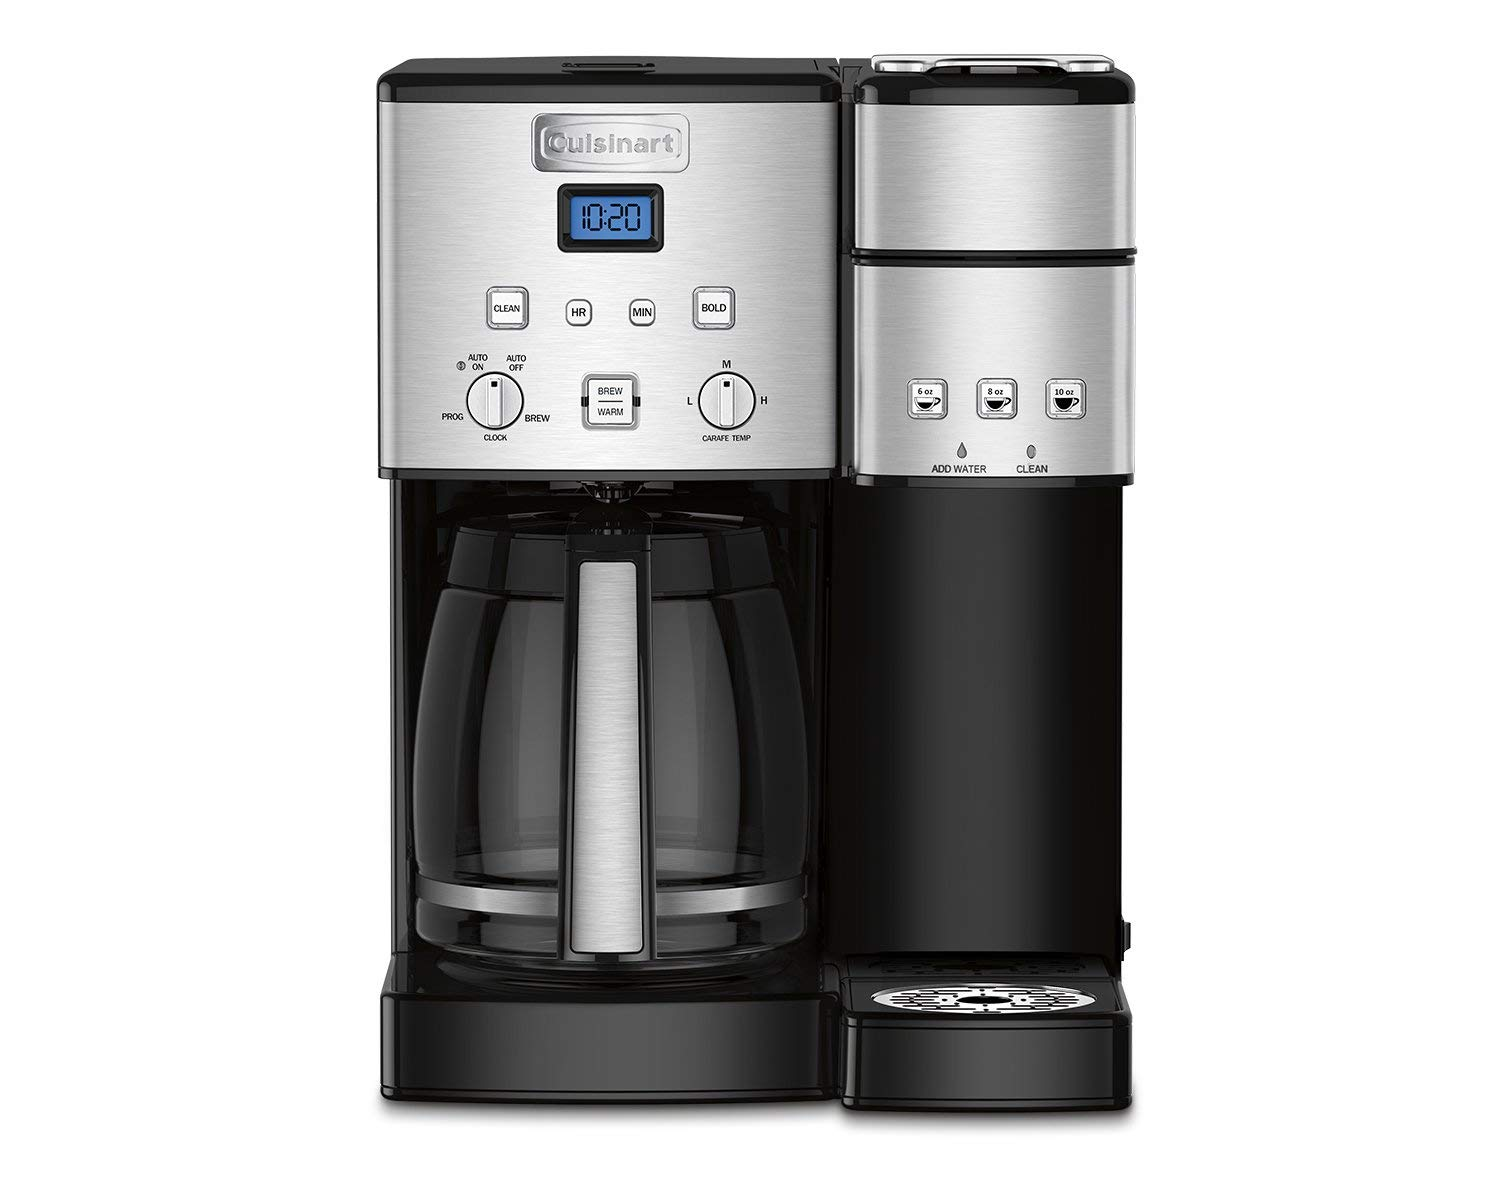 SS gold tone 12 cup coffee maker